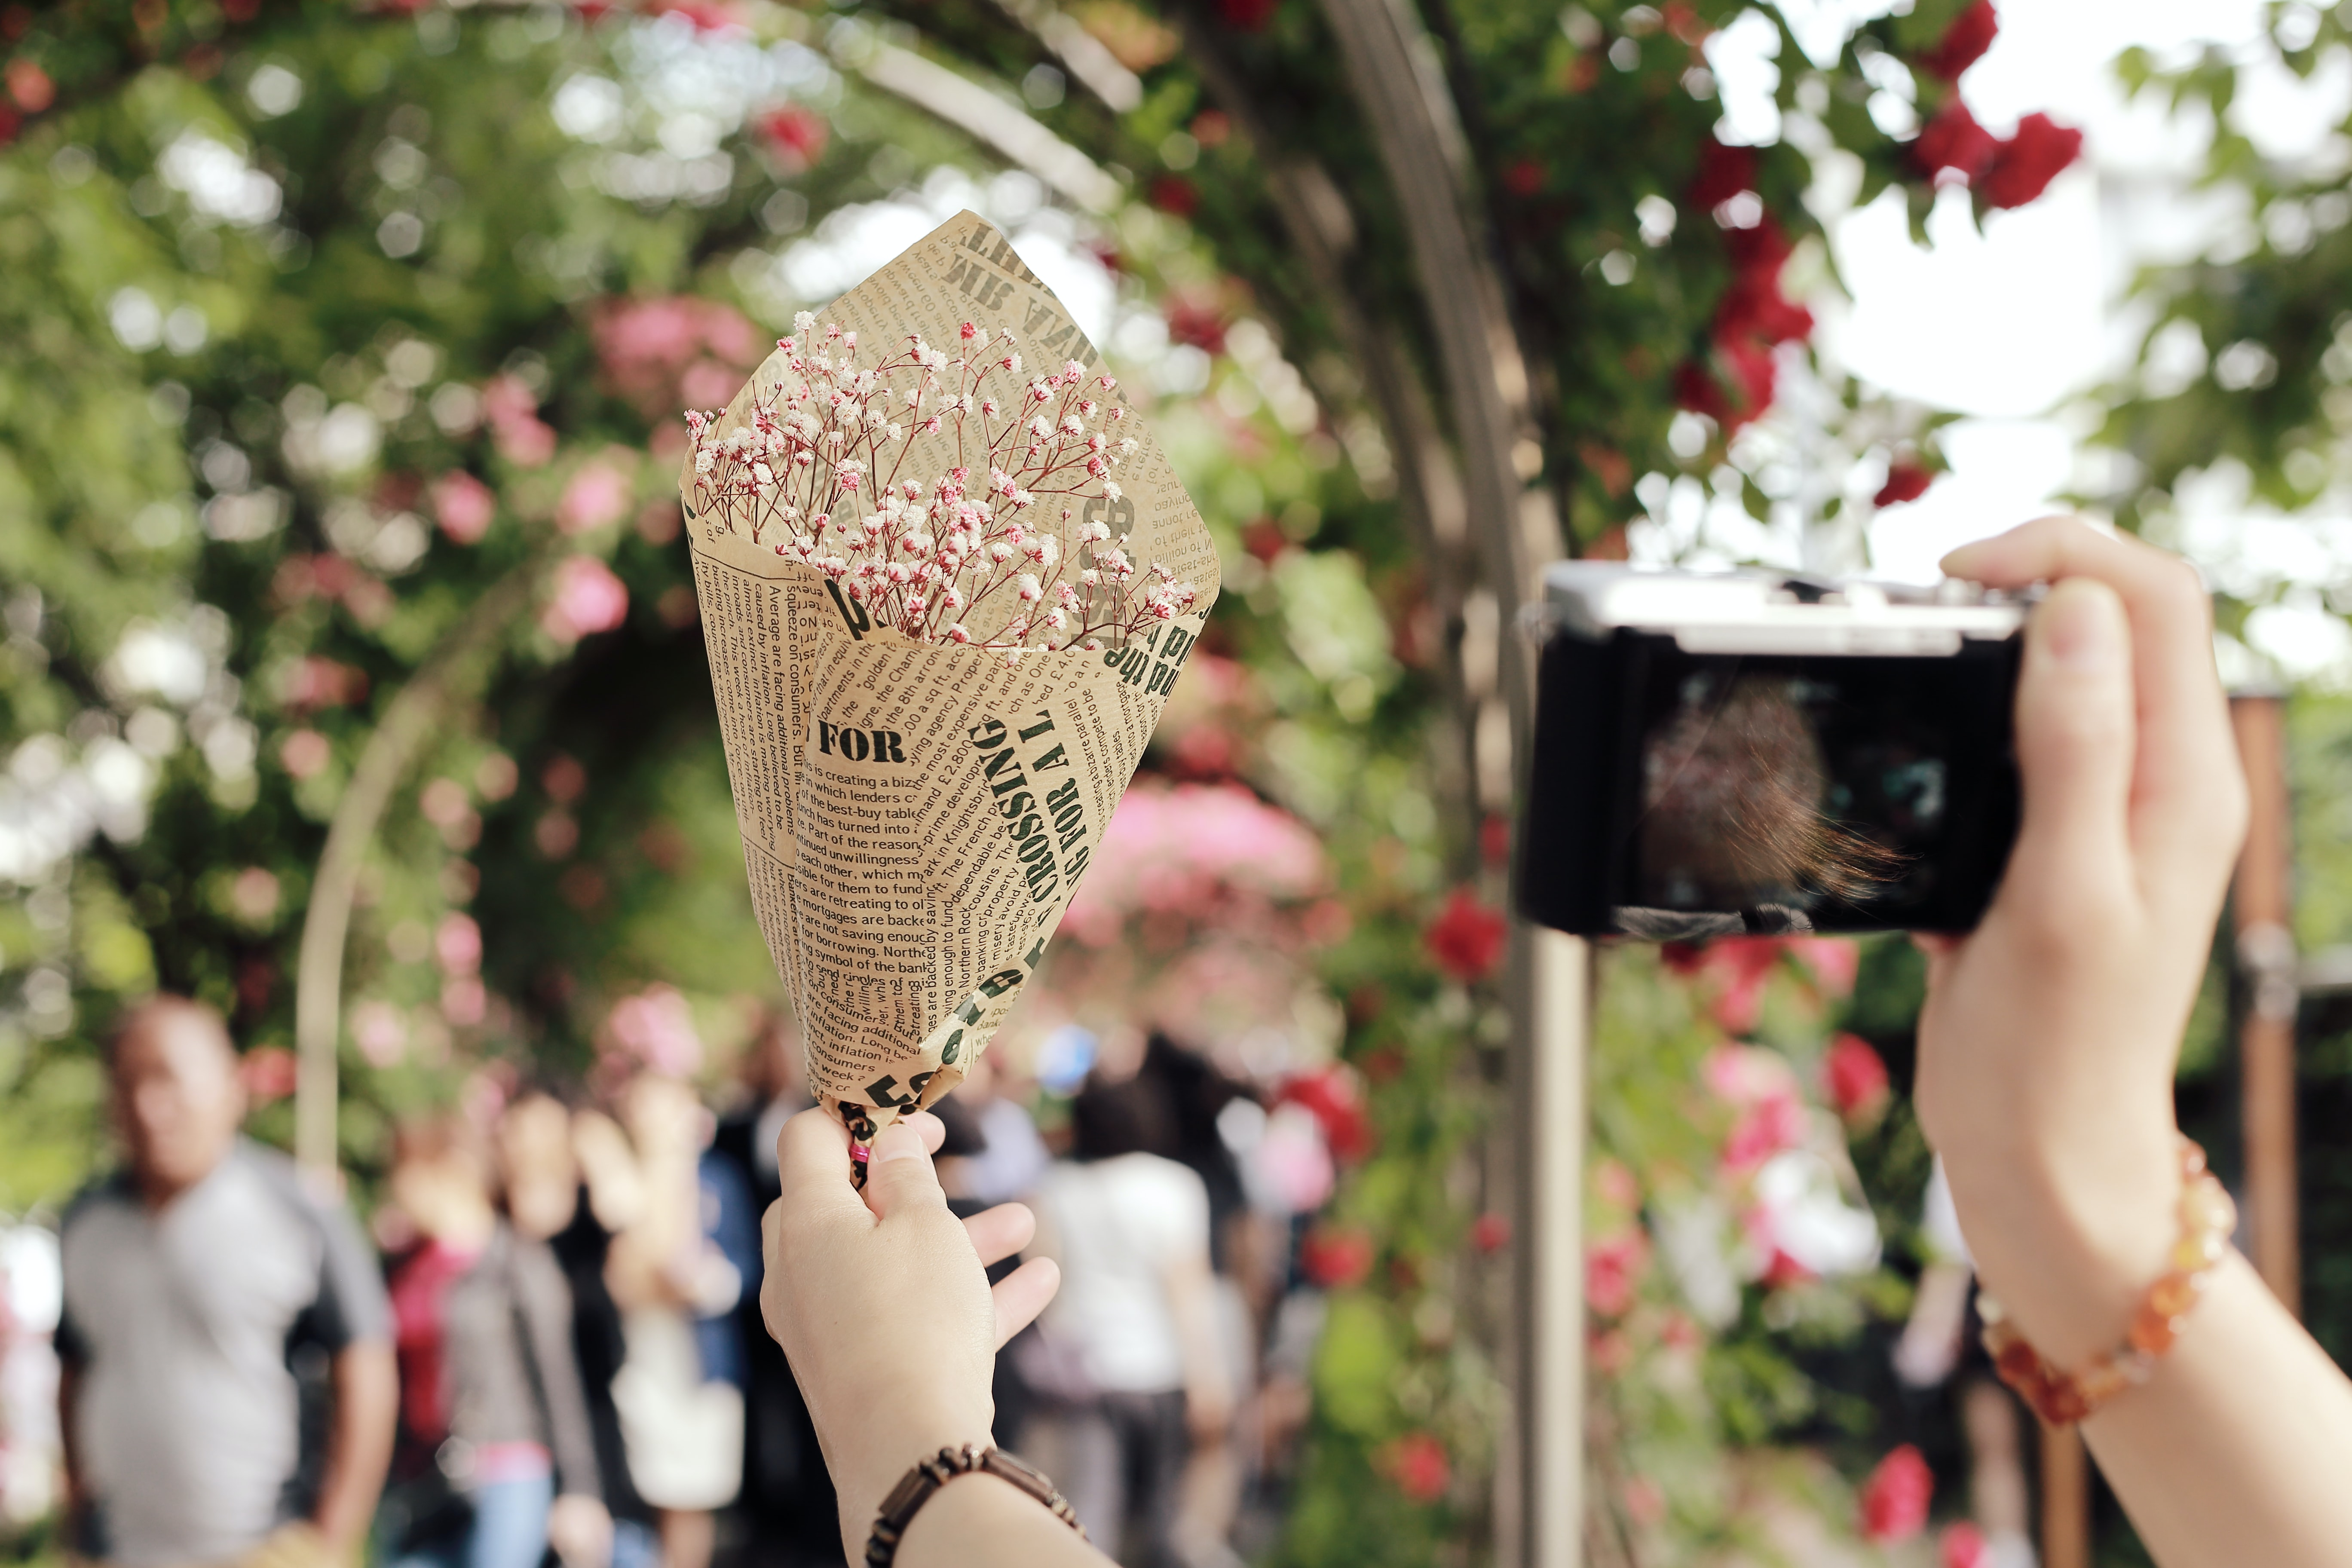 A person holding up a small posy of white flowers in one hand and taking a picture with a camera in the other hand